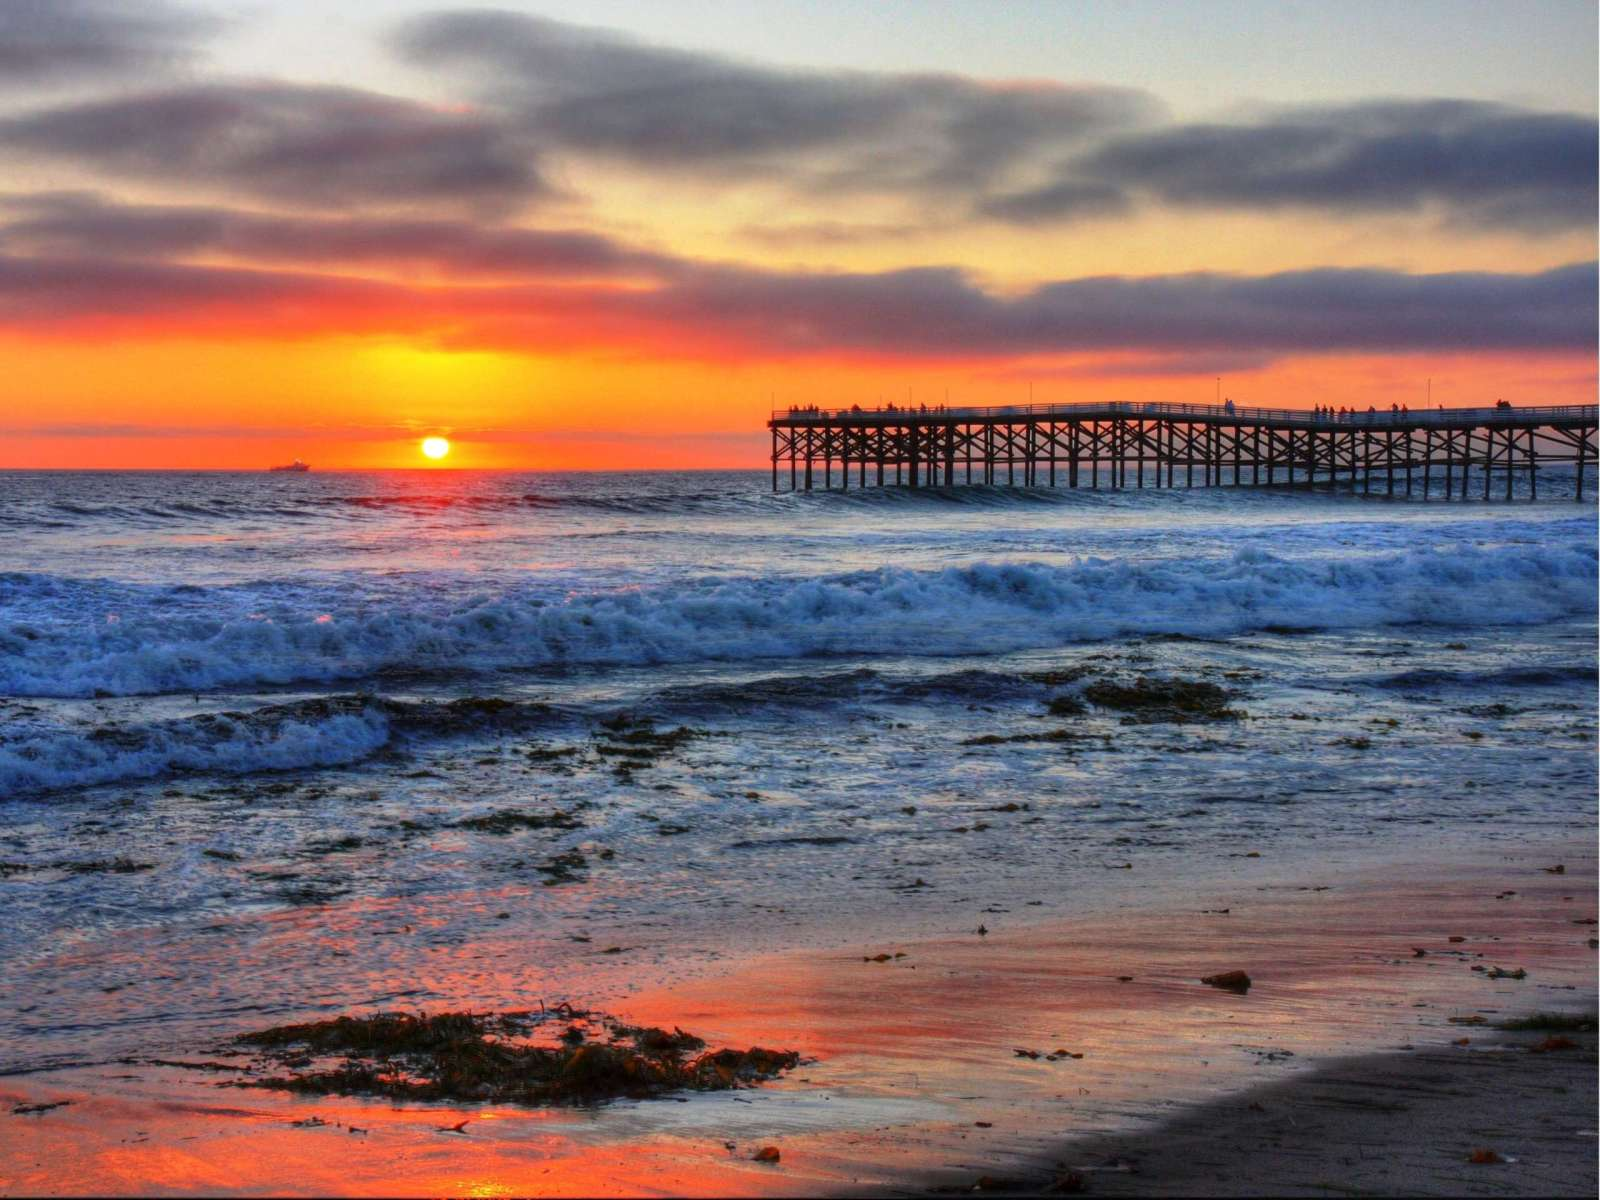 10 Things To Do In South Bay, San Diego